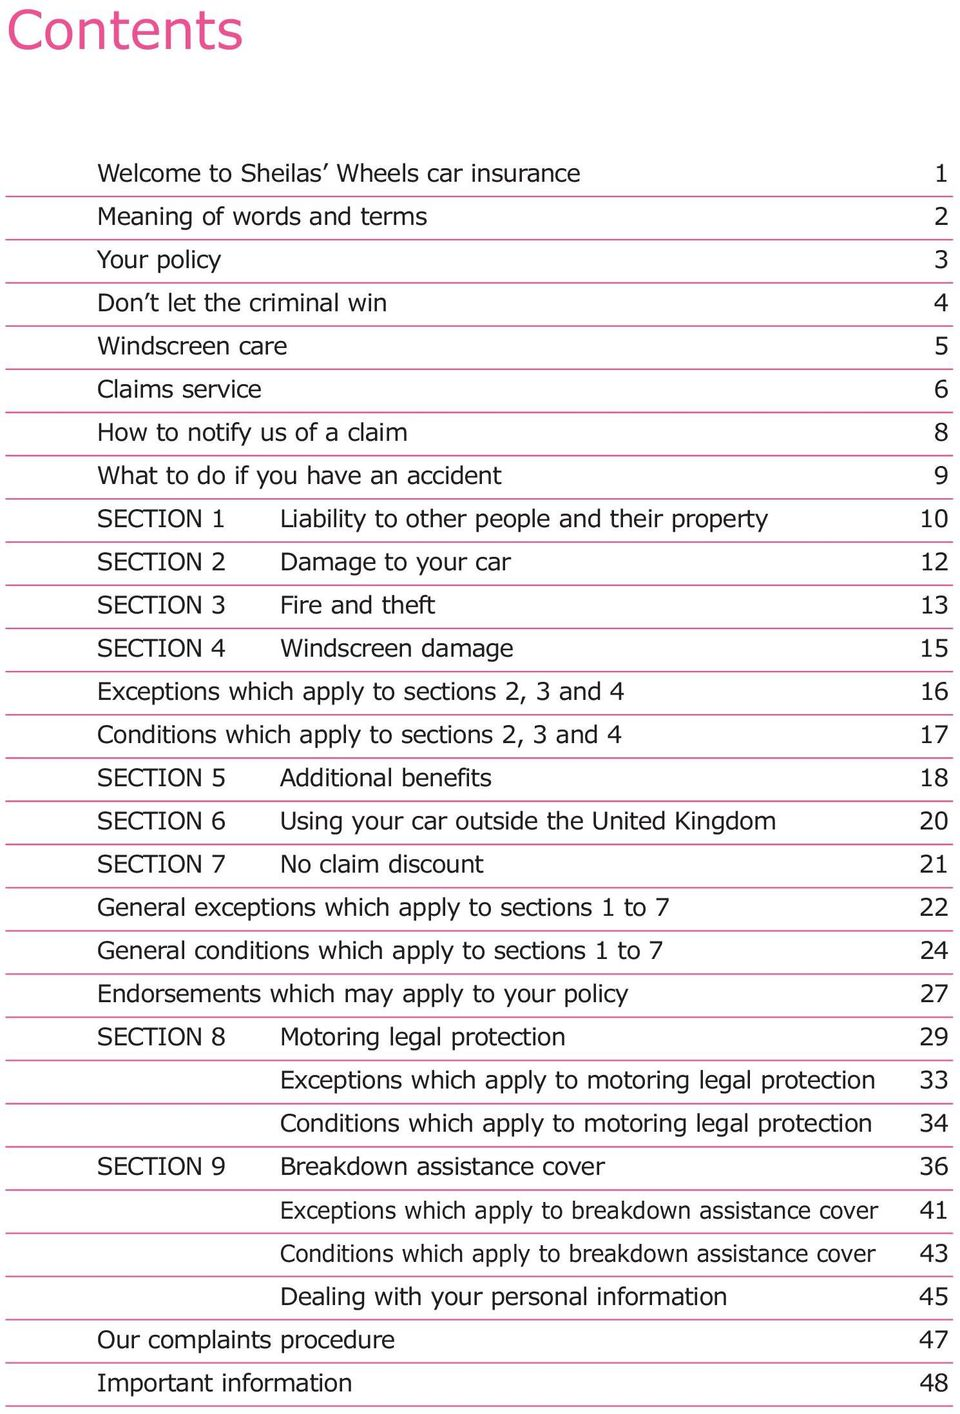 to sections 2, 3 and 4 16 Conditions which apply to sections 2, 3 and 4 17 SECTION 5 Additional benefits 18 SECTION 6 Using your car outside the United Kingdom 20 SECTION 7 No claim discount 21